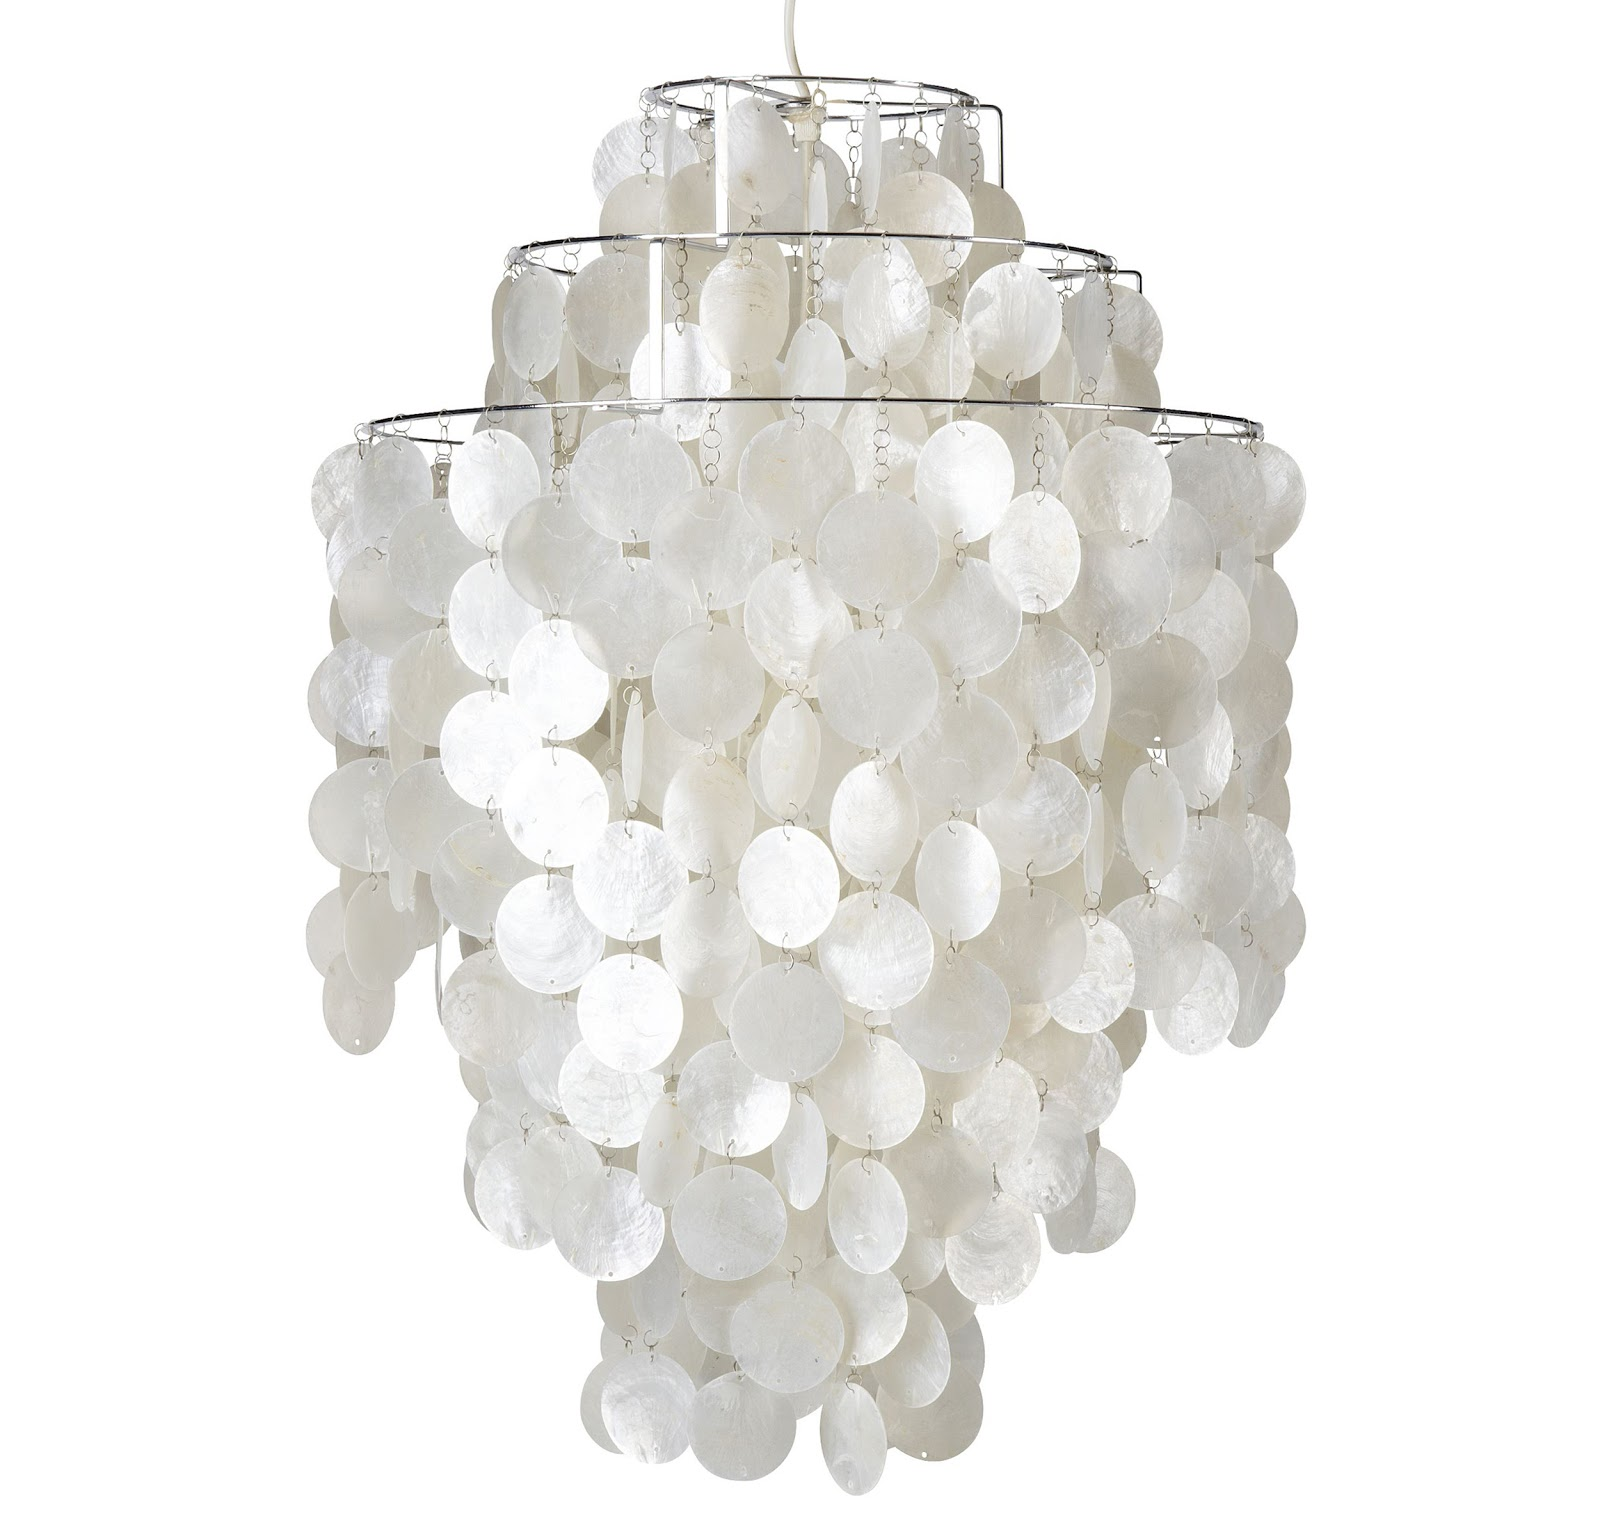 Capiz shell lamps 10 methods to give your home a royal look conclusion explore the wide range of capiz shell lamps aloadofball Image collections